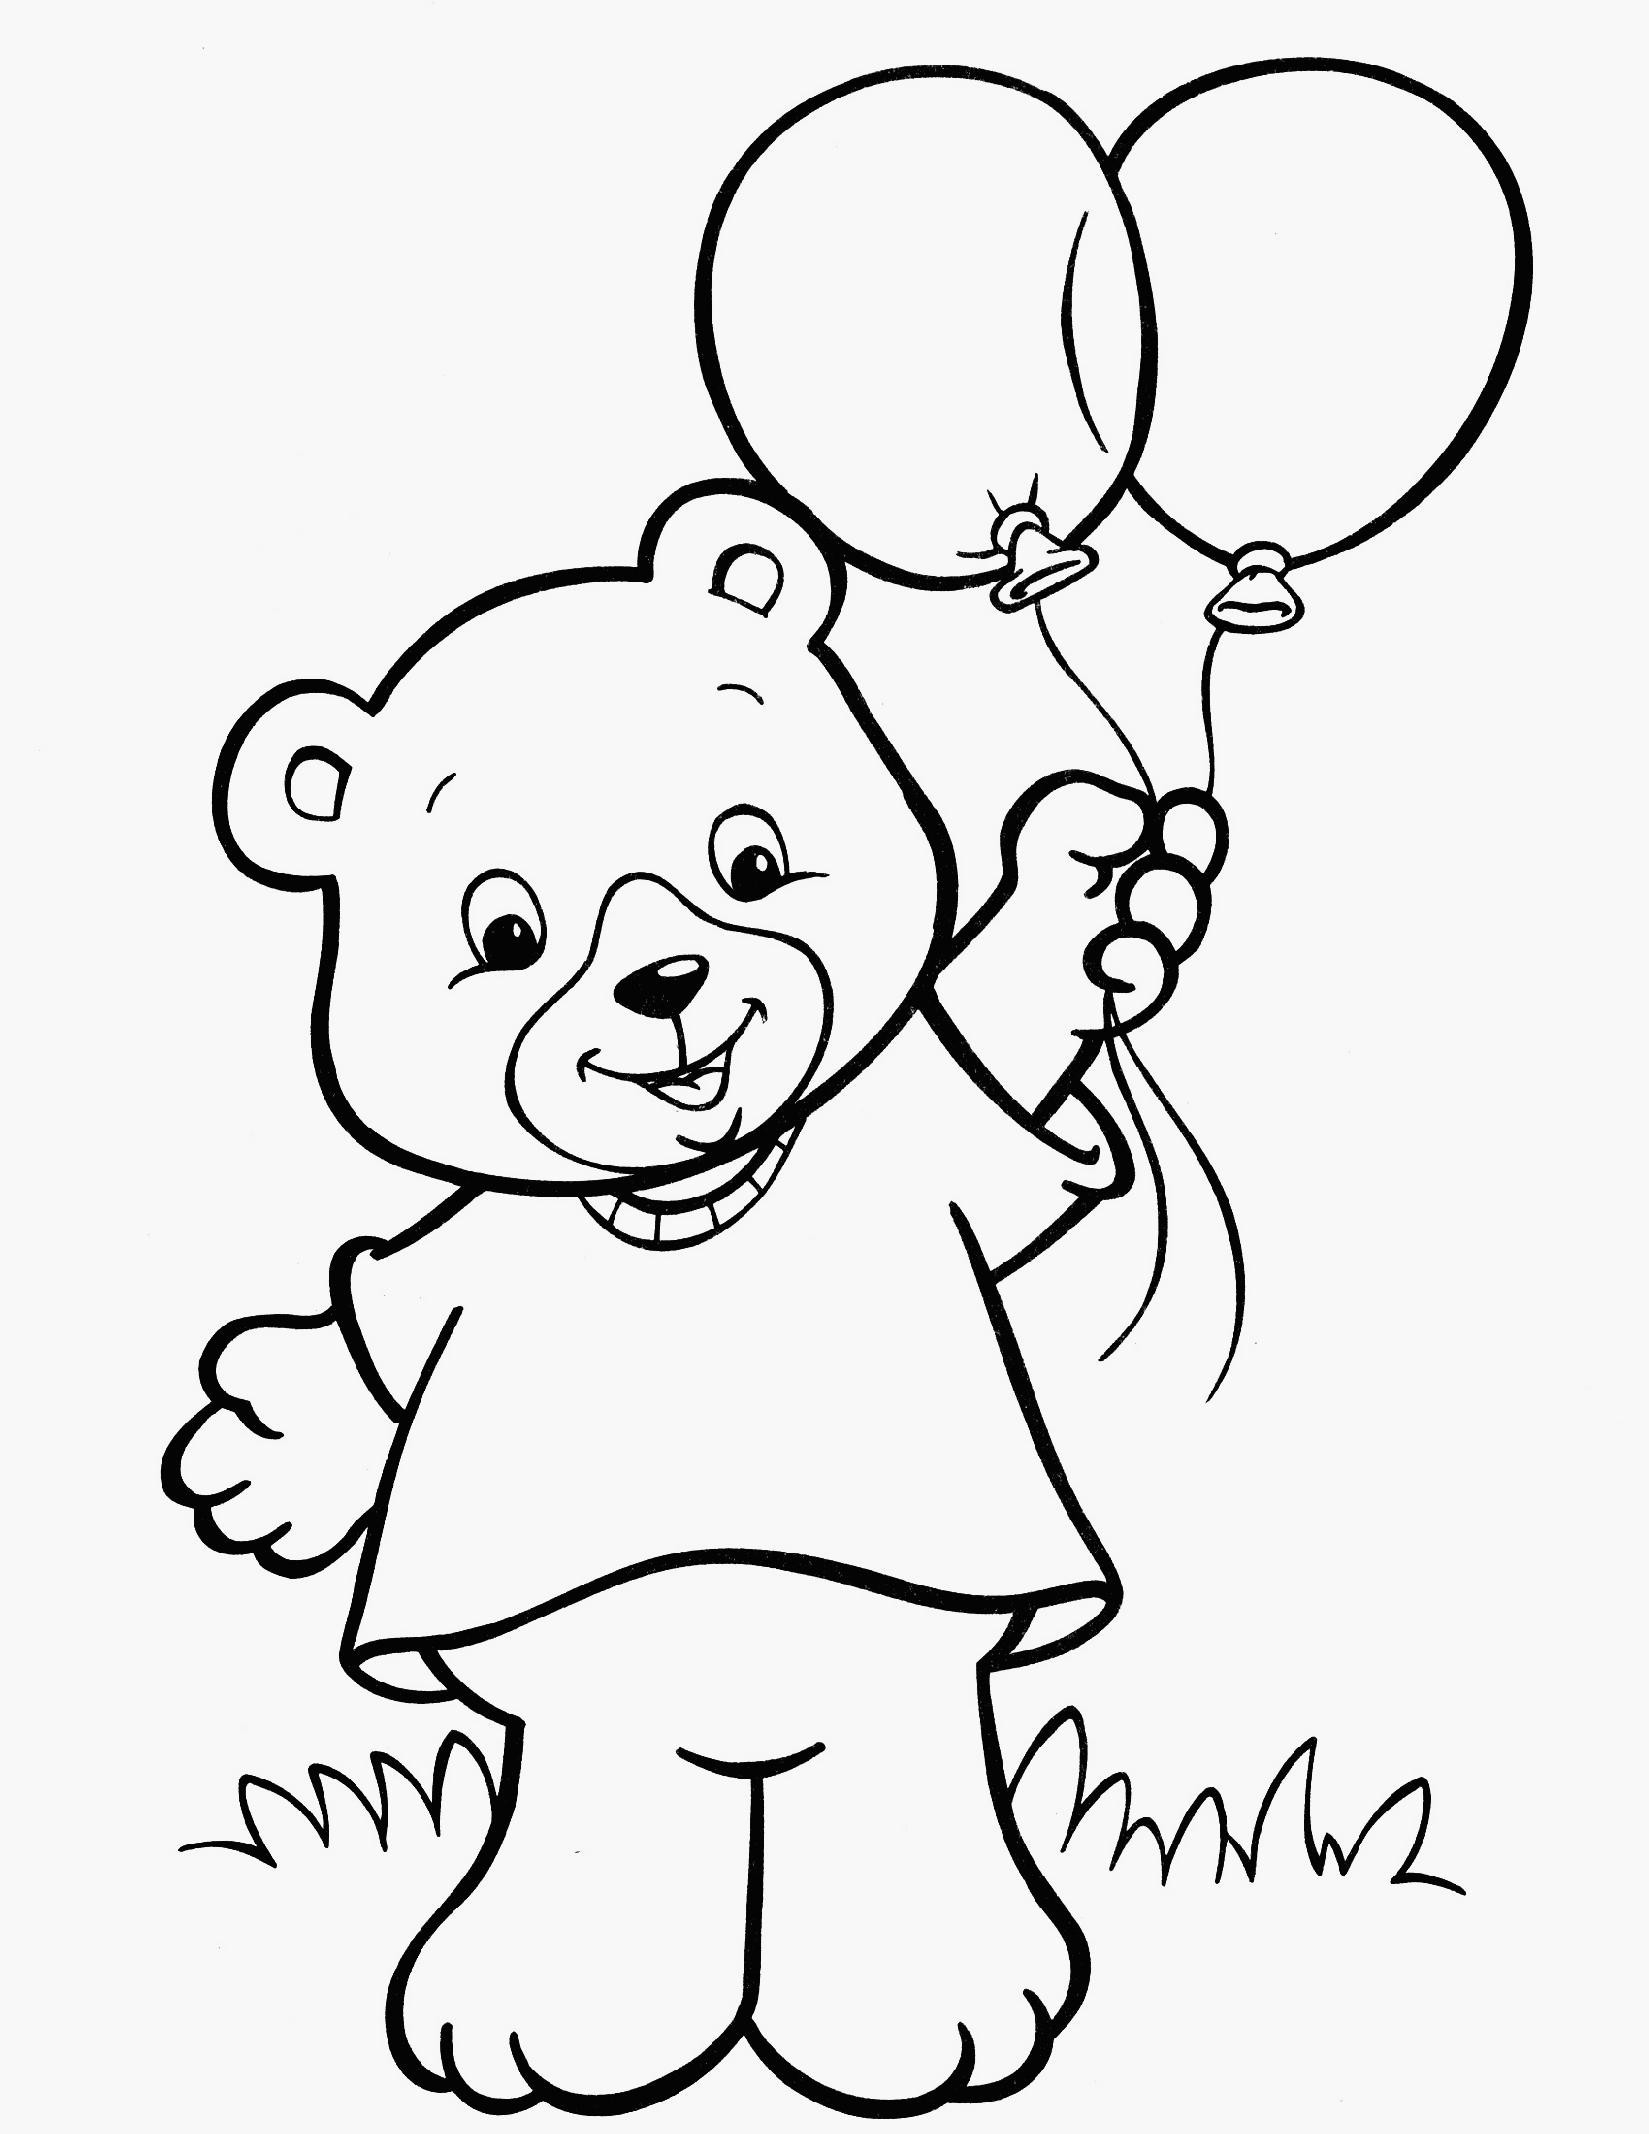 Coloring Worksheets For 3 Year Olds Activities For 3 Year Olds Drawing at GetDrawings Free